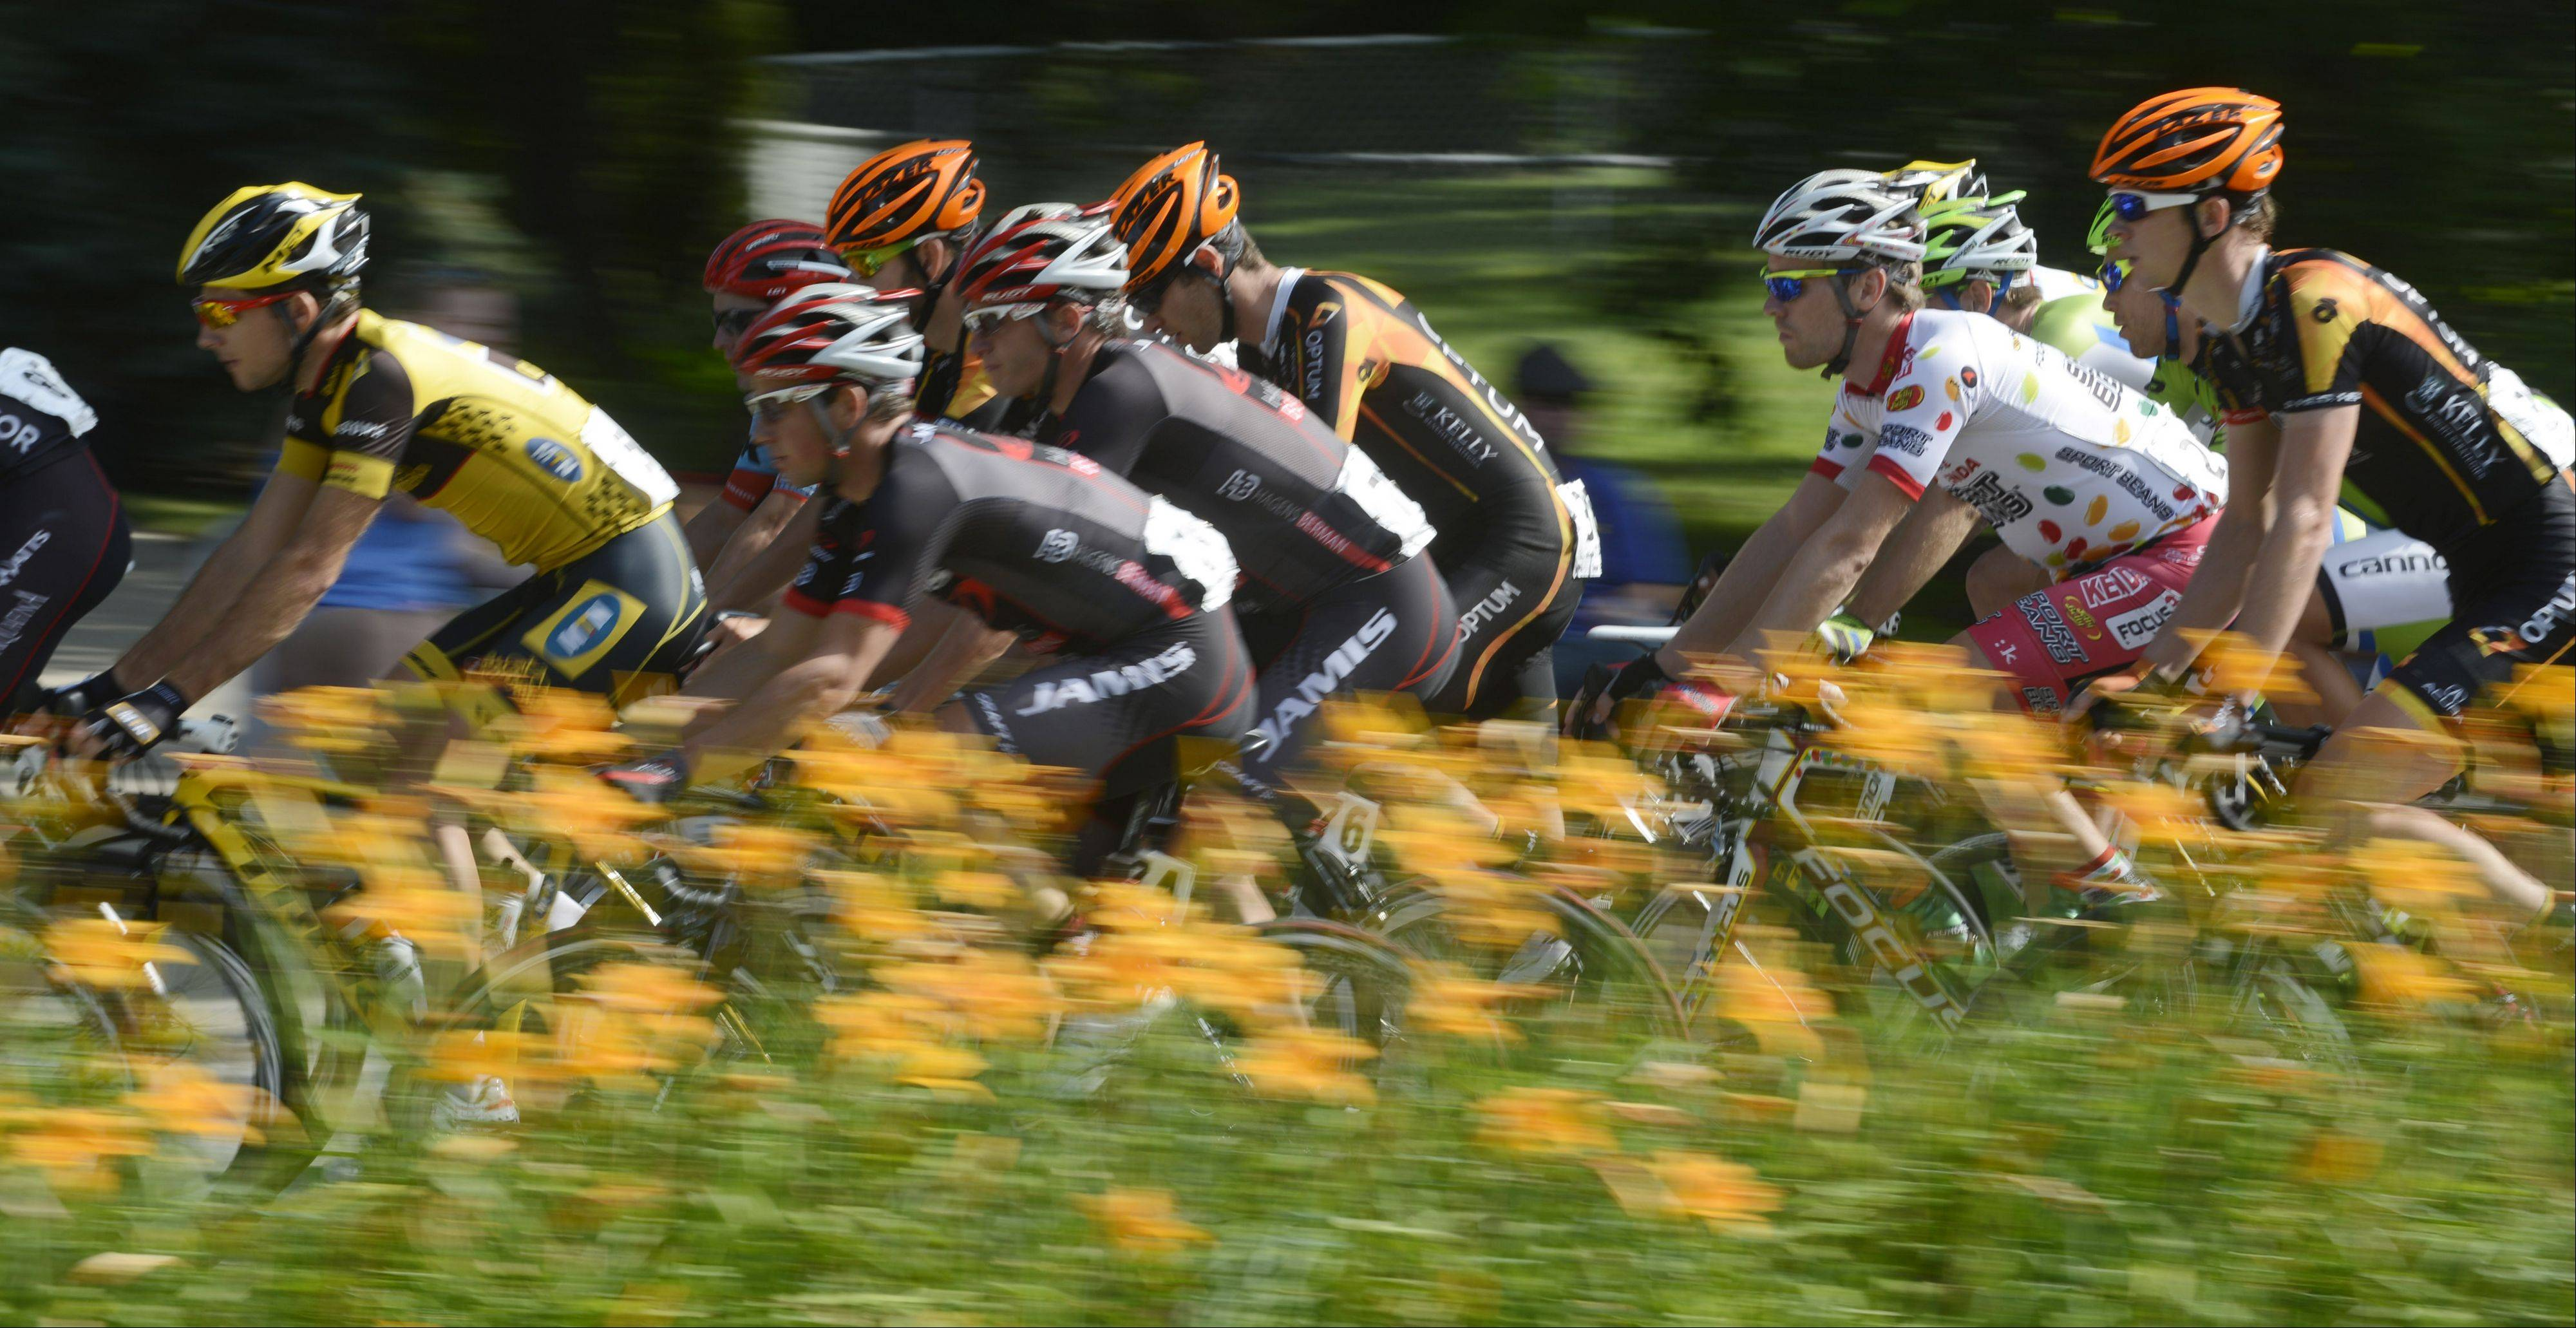 Cyclists compete in the Gullo International Pro Men Circuit Race, Stage 3, during the Tour of Elk Grove Sunday.